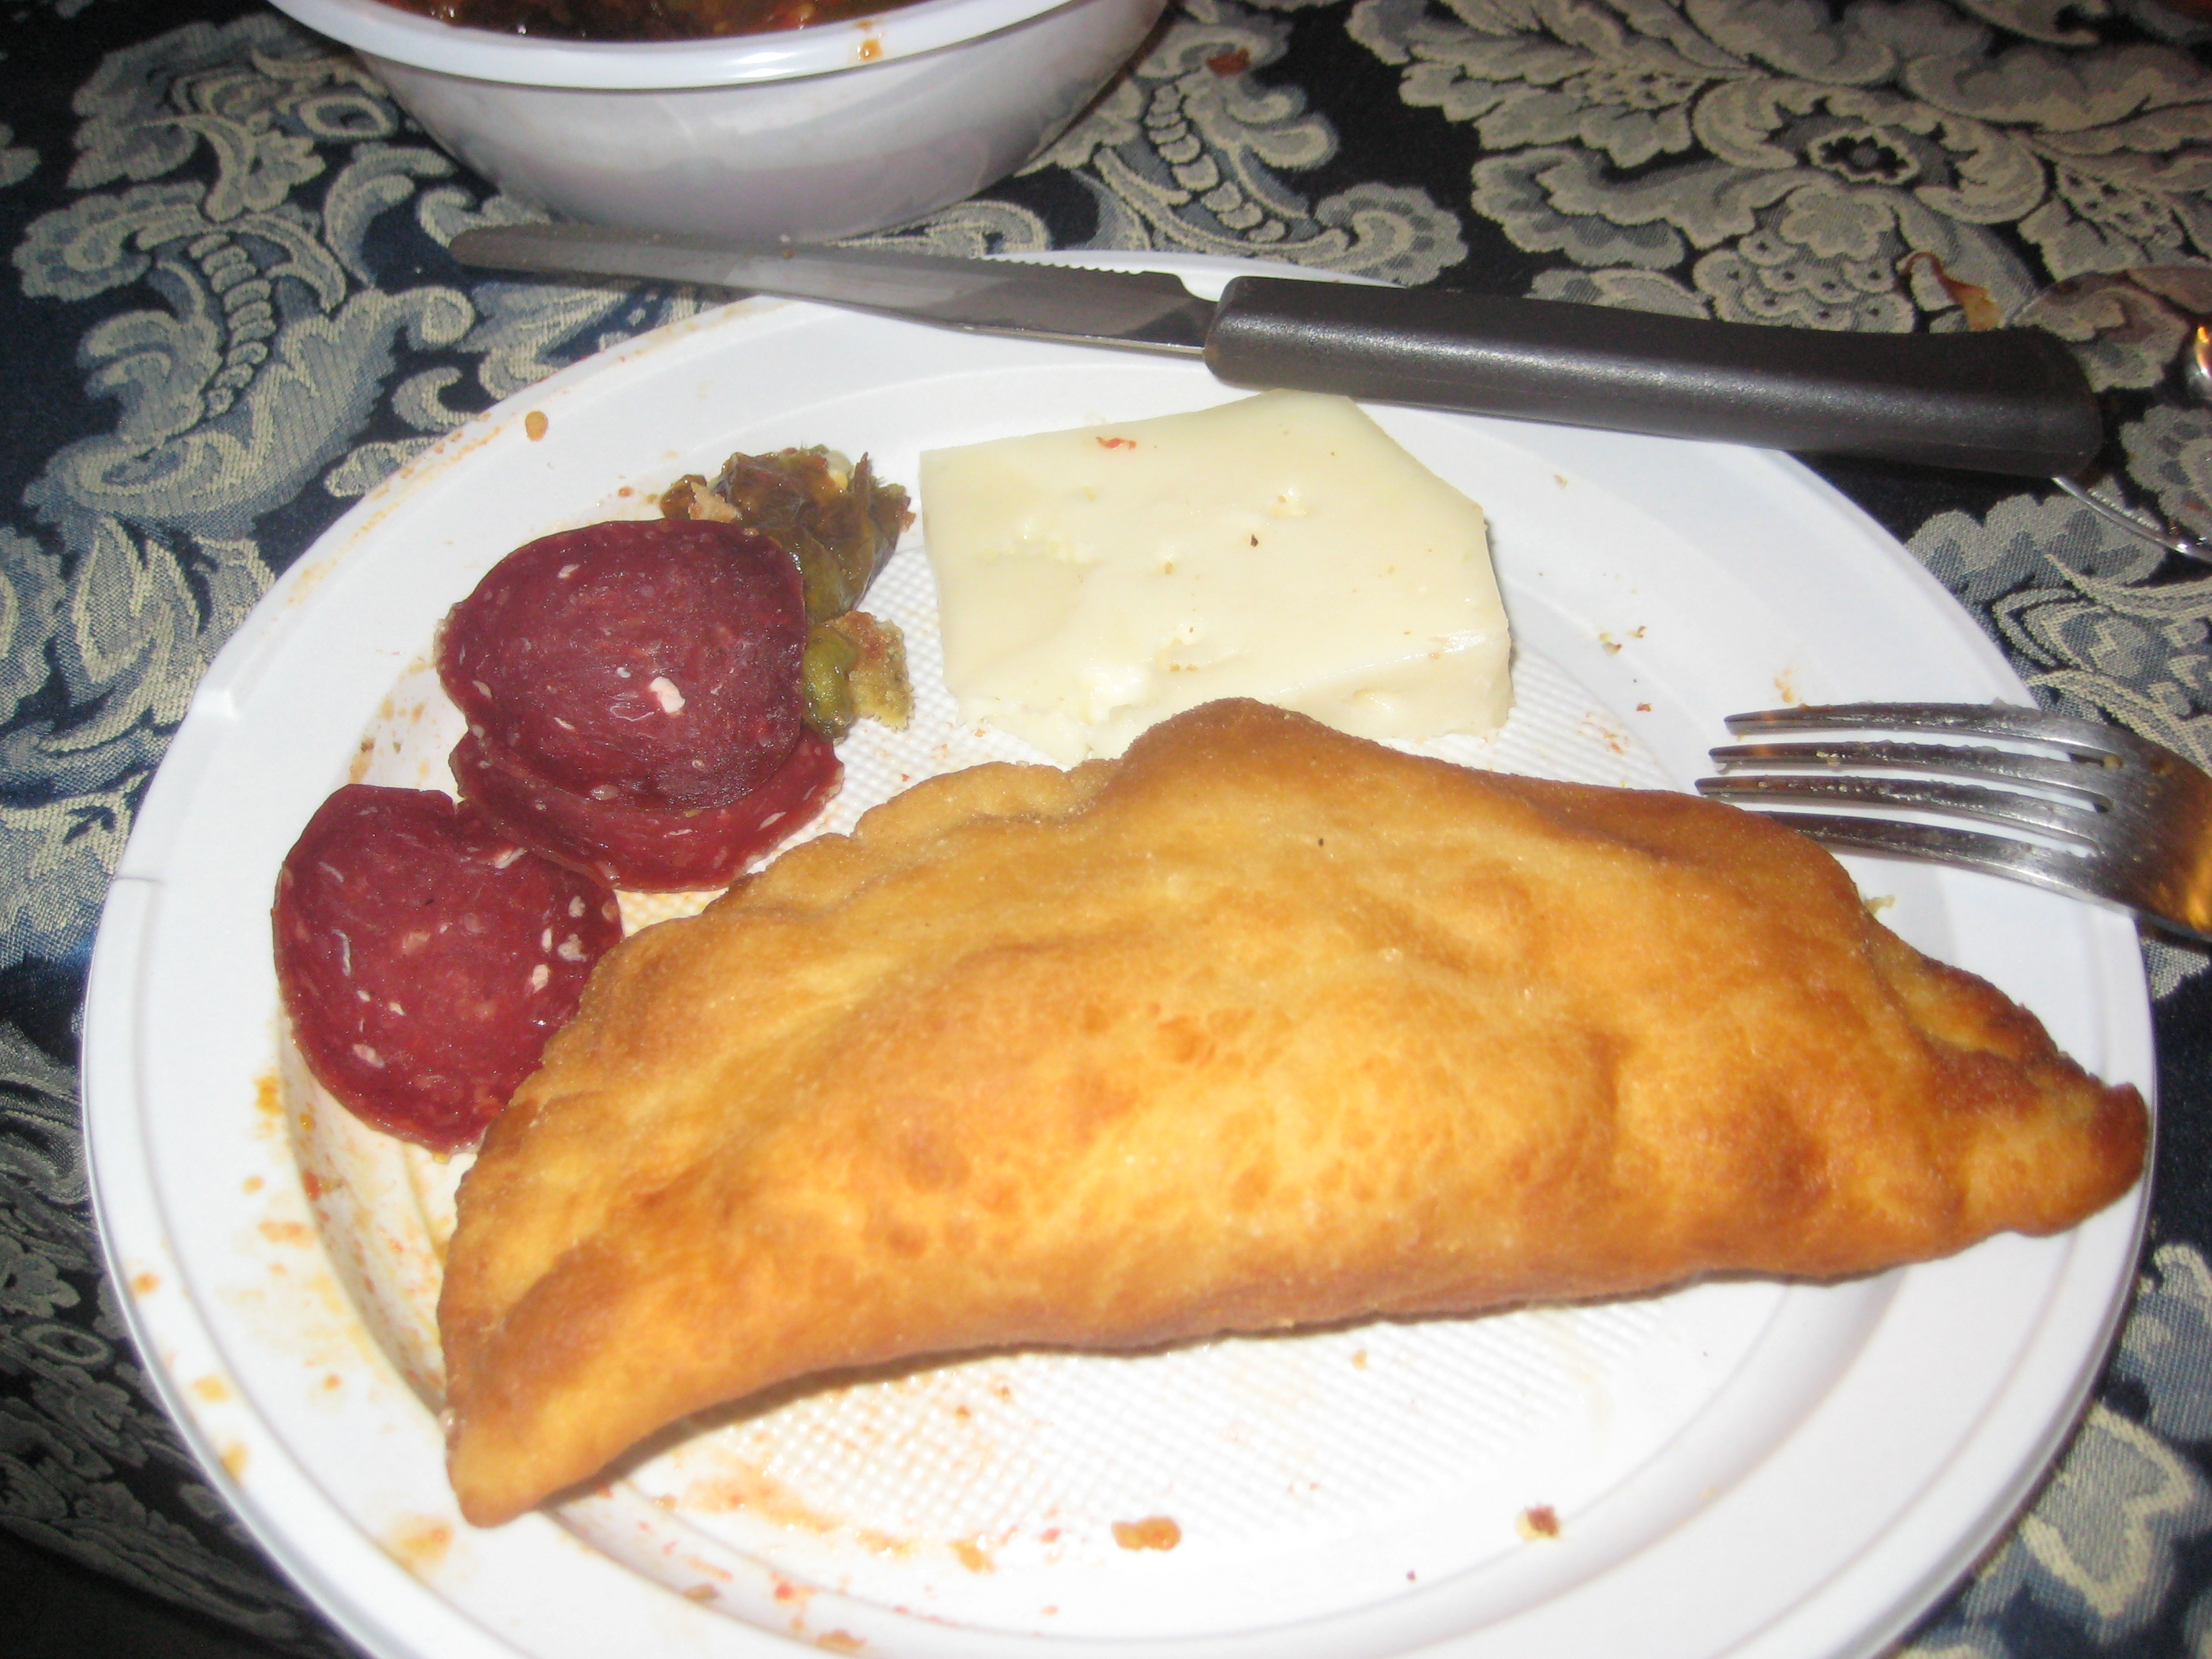 ferragosto-in-puglia-fireworks-parades-and-panzerotti-calzones-filled-savory-meat